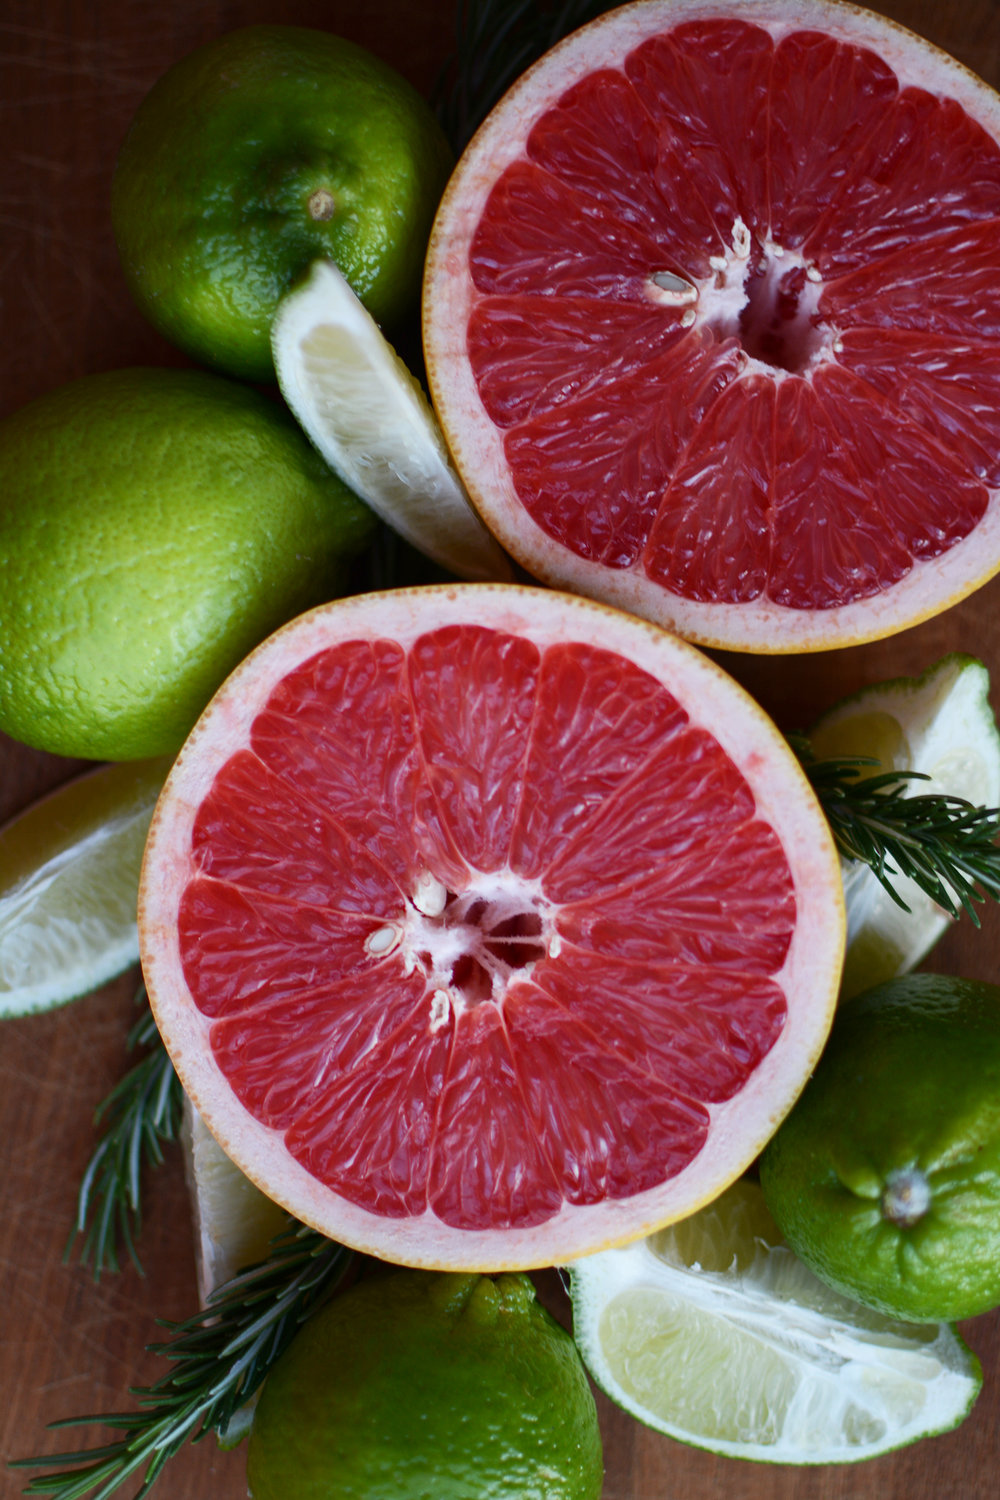 Grapefruit&Limes_Ingredients.jpg